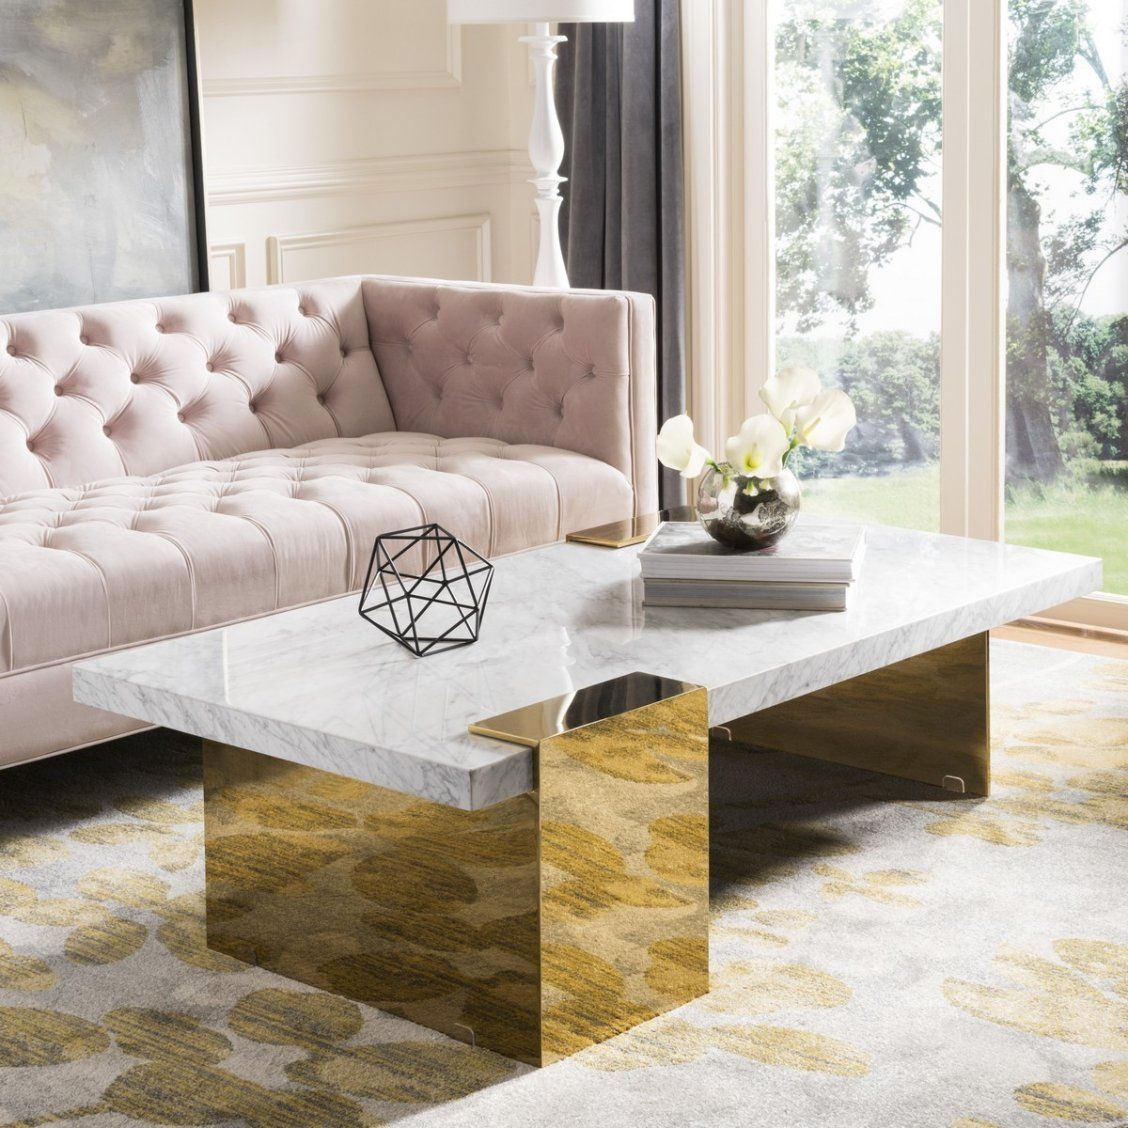 Make A Monumental Design Statement With This Luxurious Marble